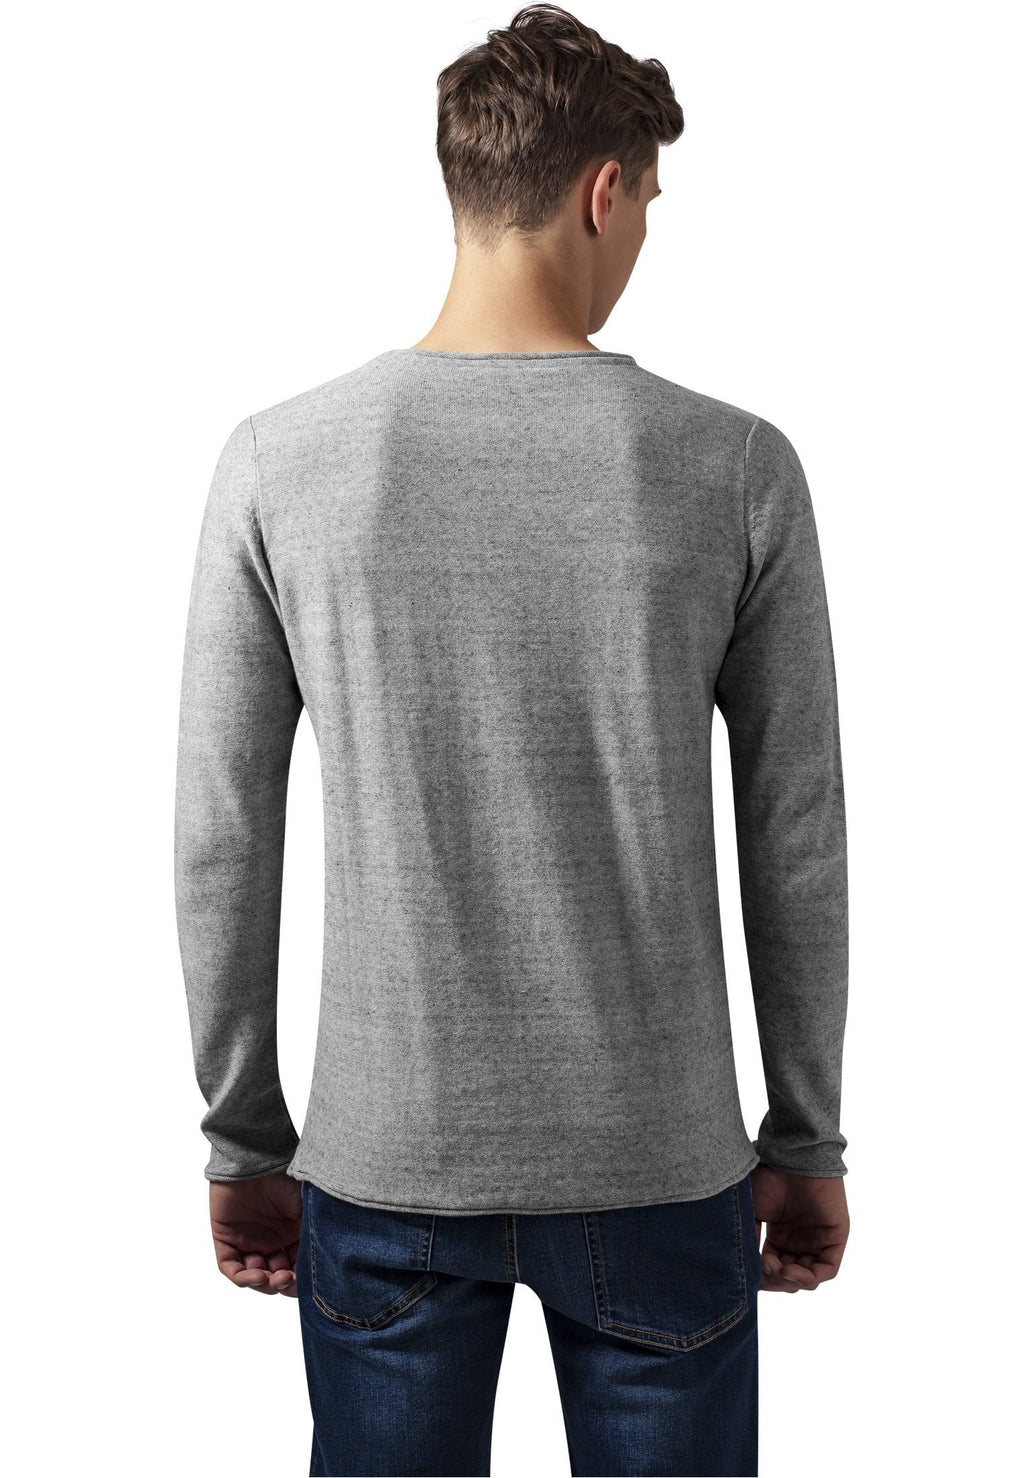 Fine Knit Melange Cotton Sweater - Grey